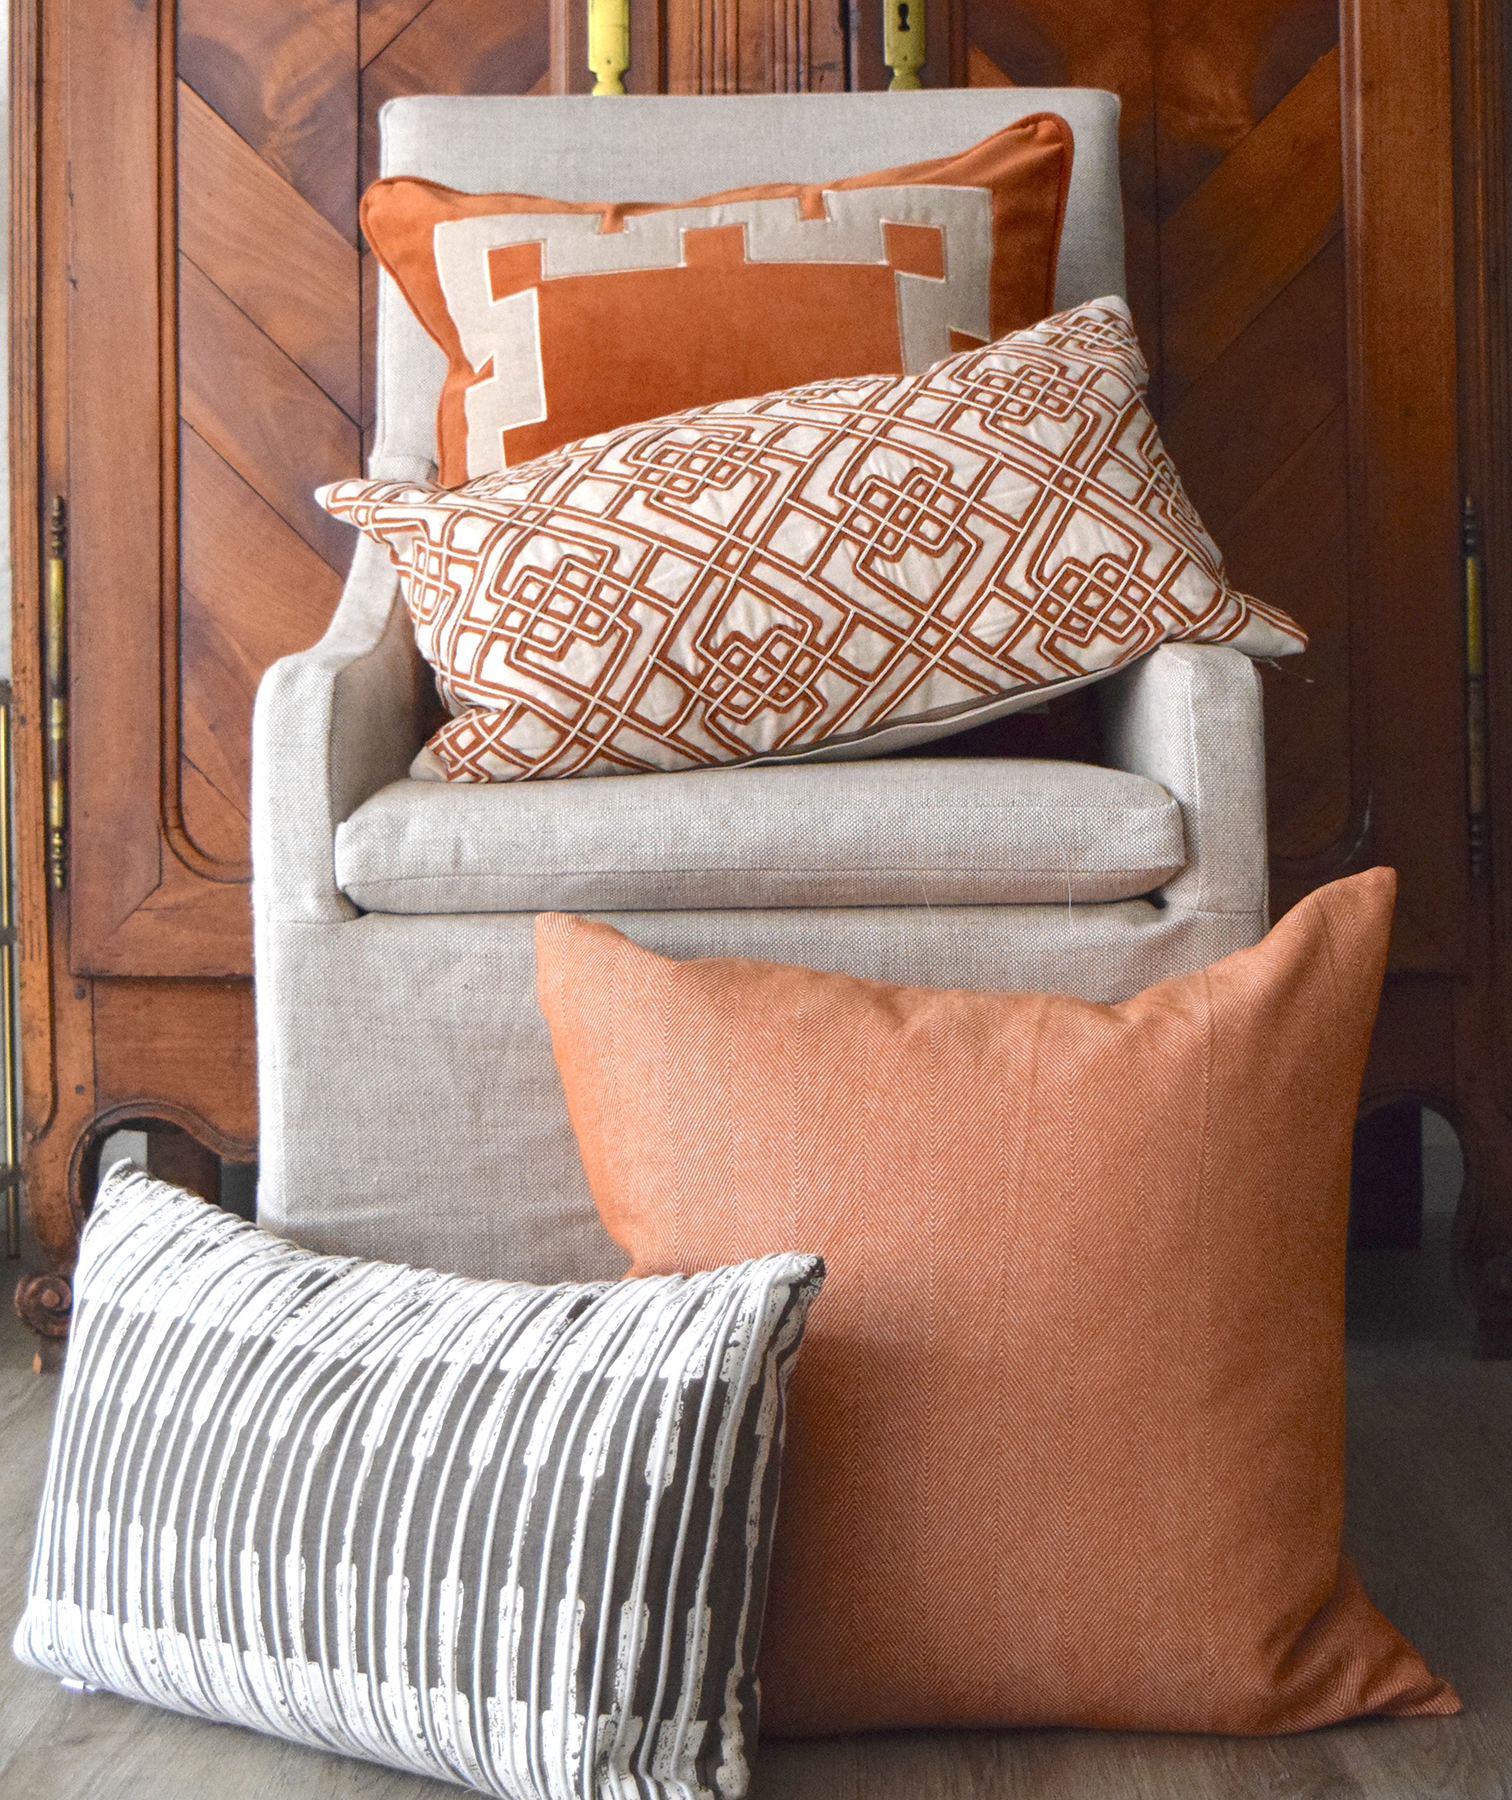 Add in Throw Pillows